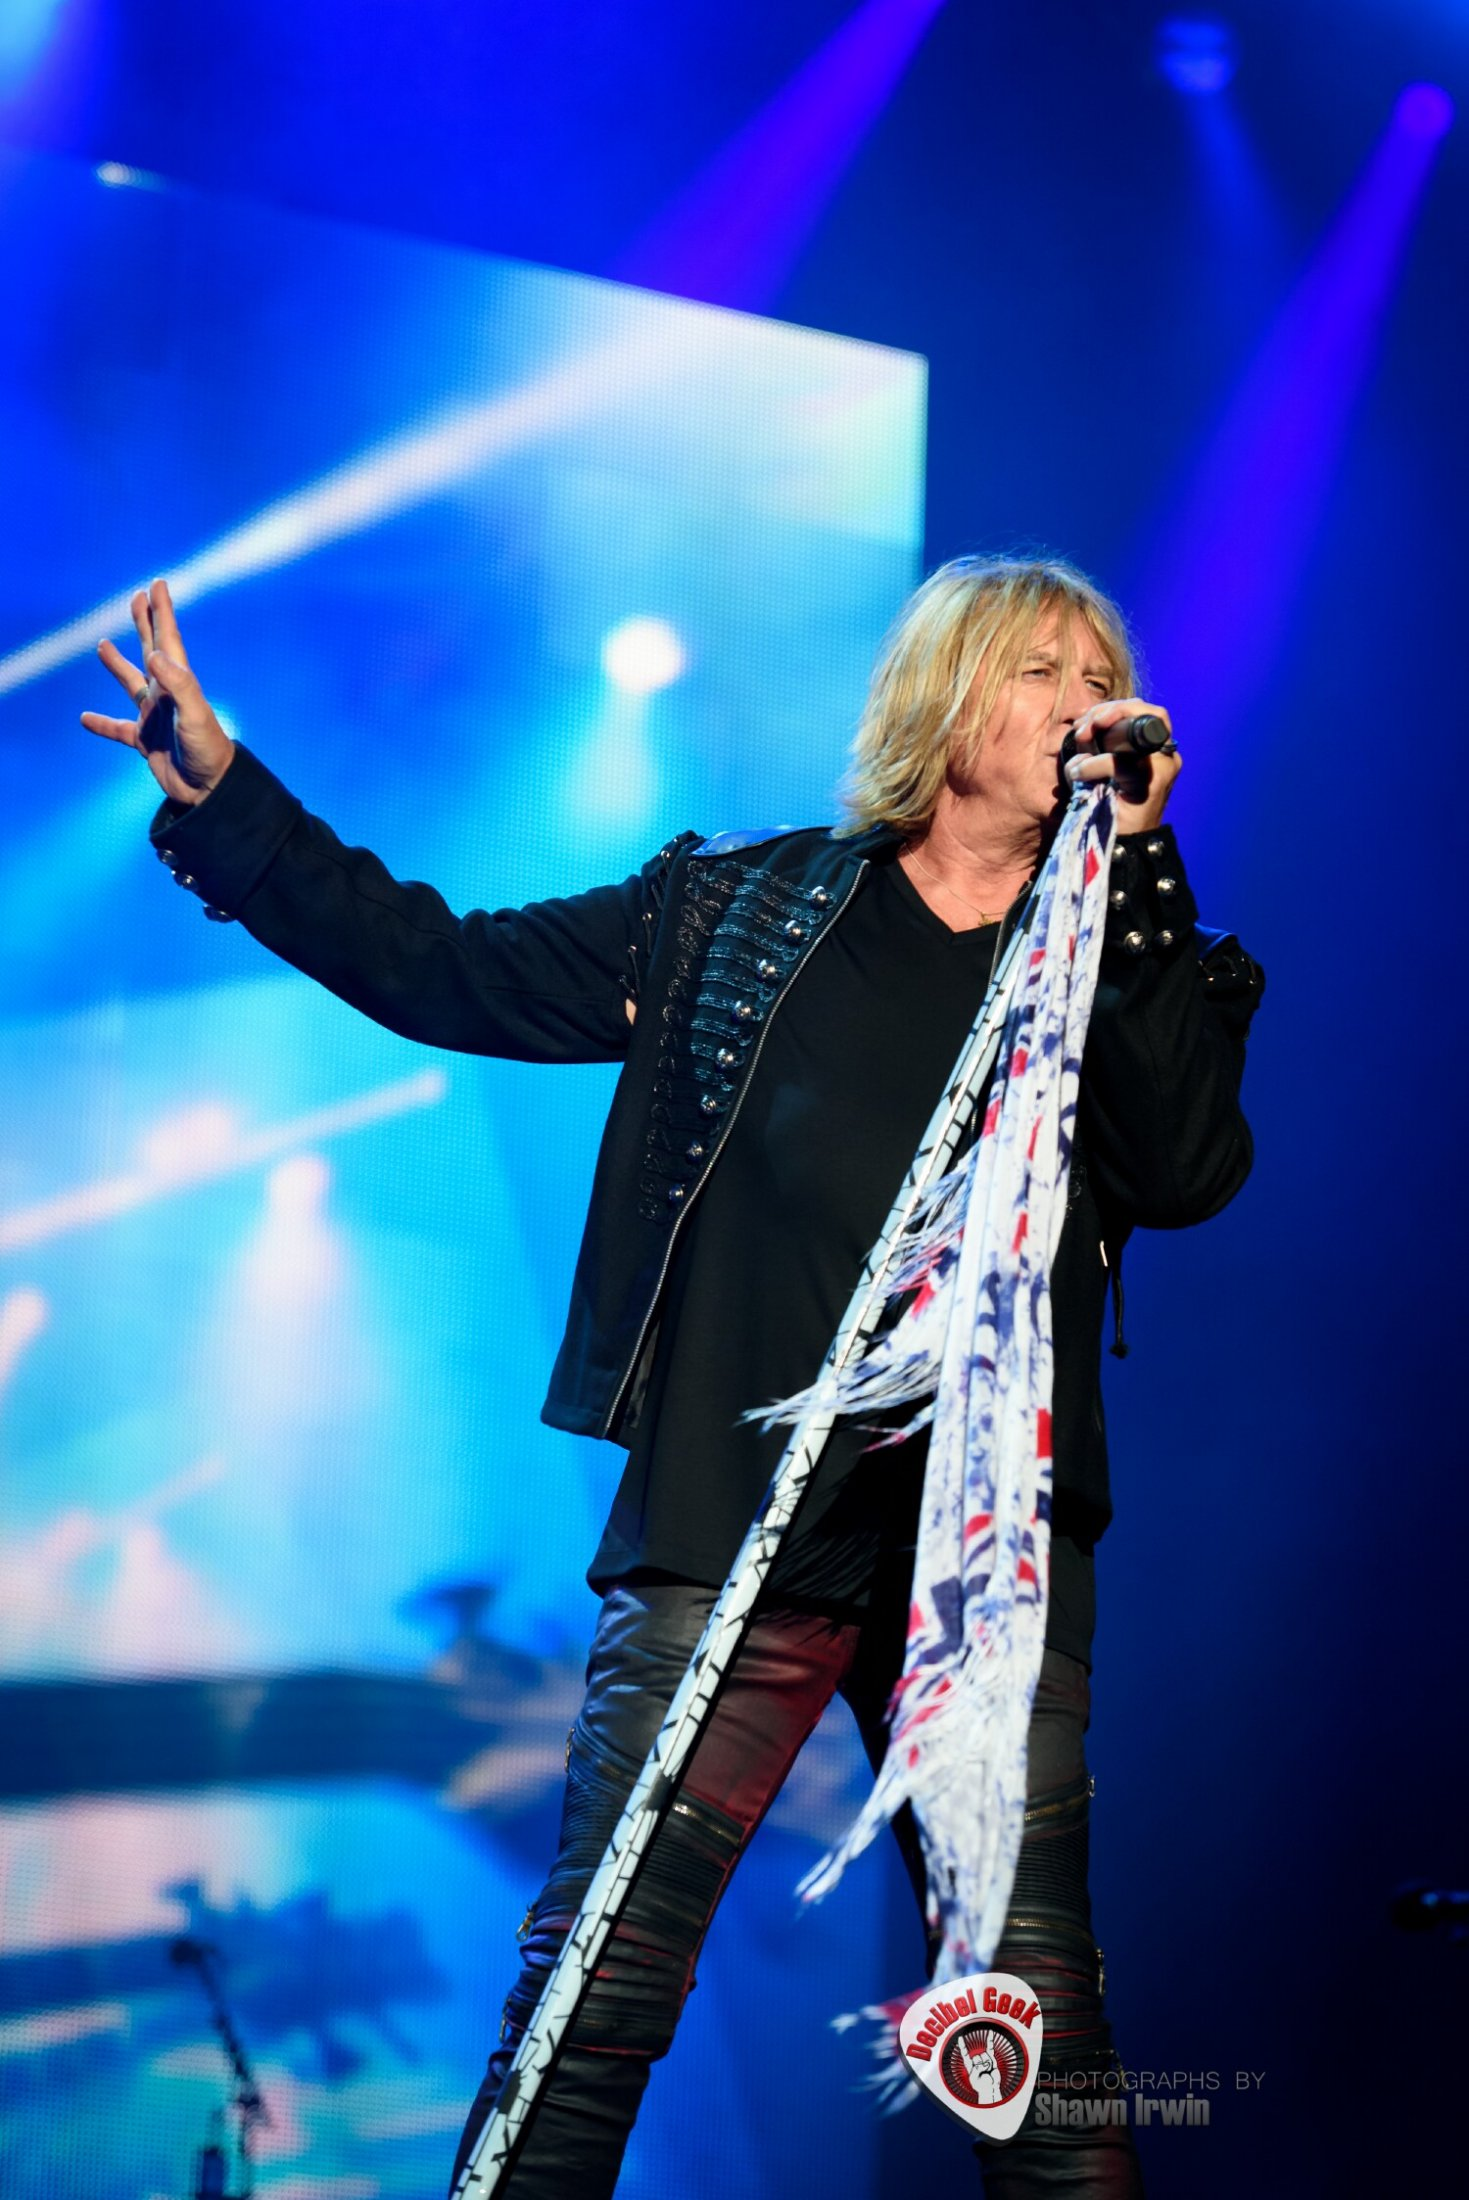 Def Leppard #1-Sweden Rock 2019-Shawn Irwin